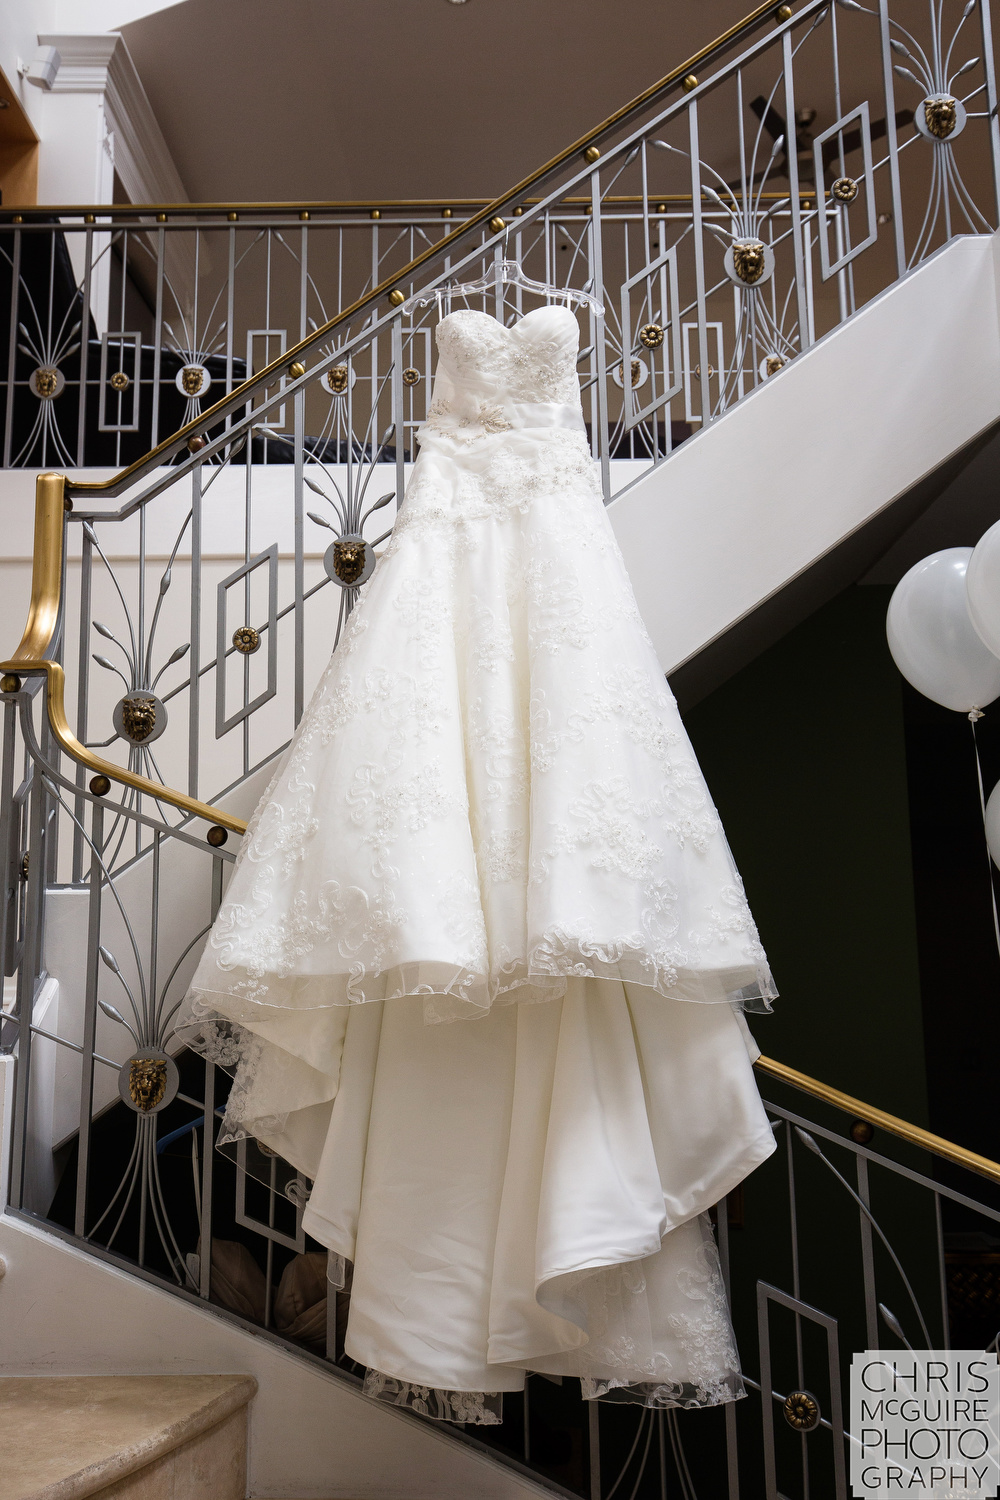 Chicago wedding dress hanging on stairs